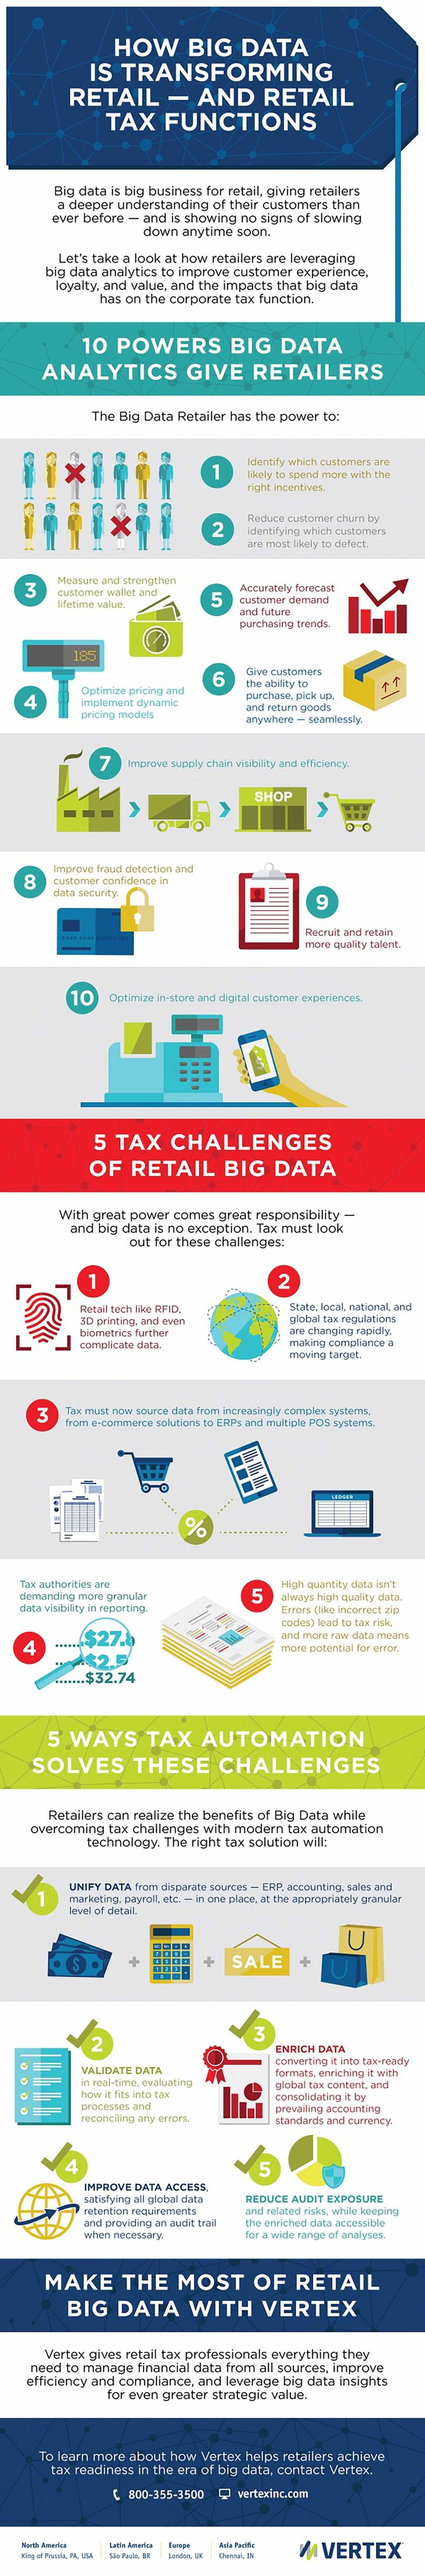 An infographic explaining how big data is transforming retail tax functions.